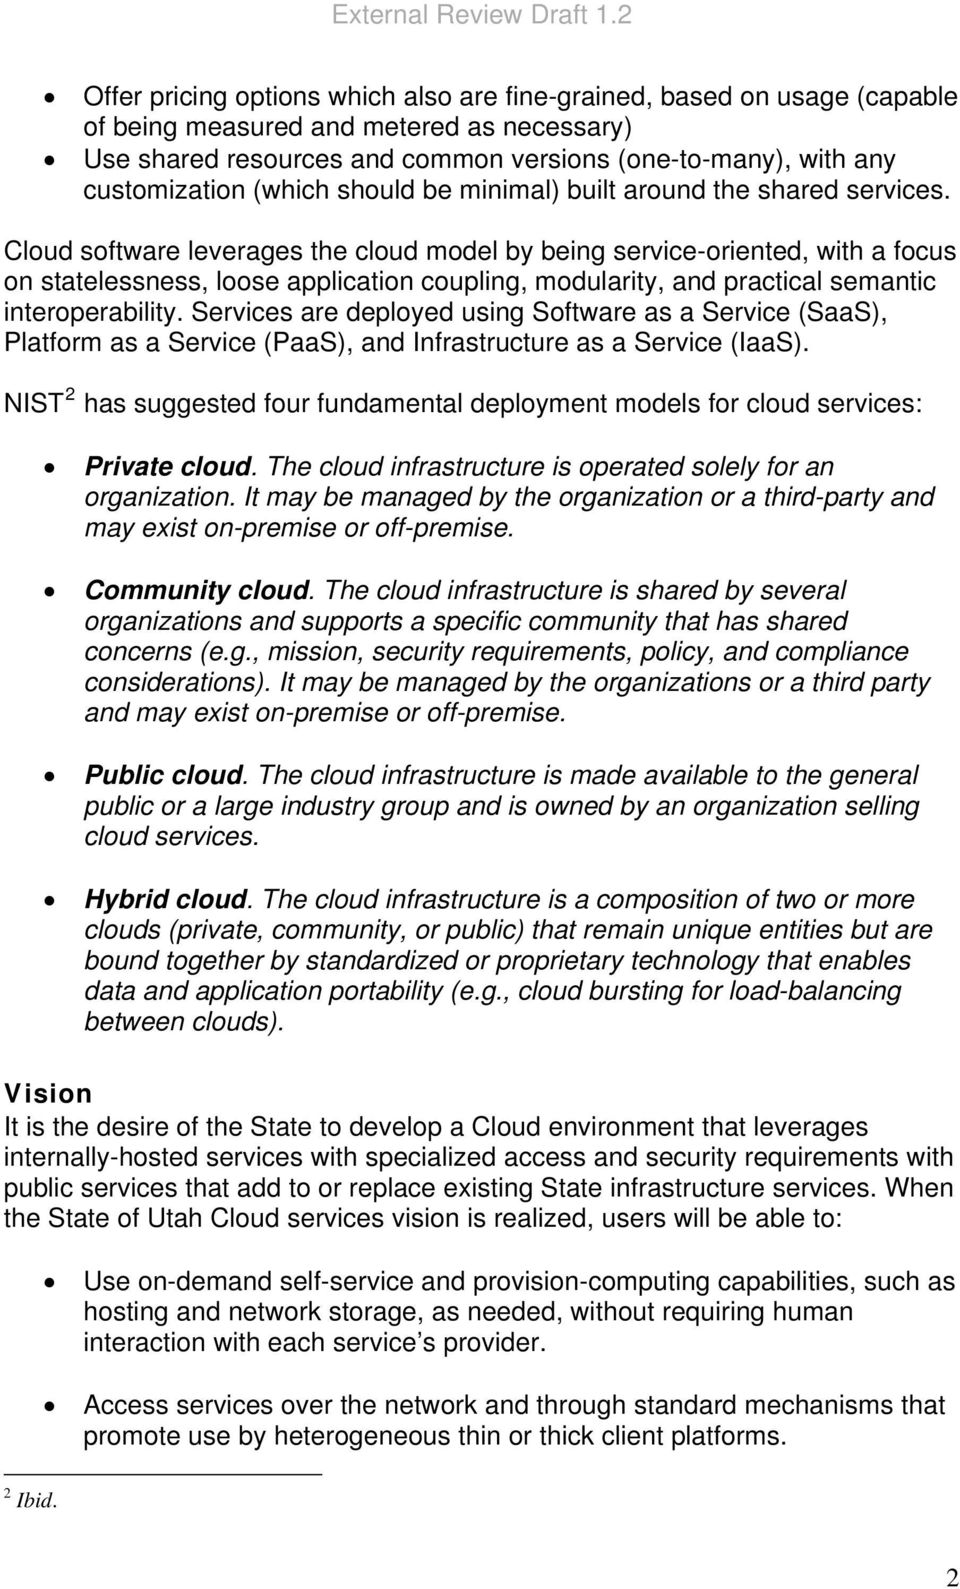 Cloud software leverages the cloud model by being service-oriented, with a focus on statelessness, loose application coupling, modularity, and practical semantic interoperability.